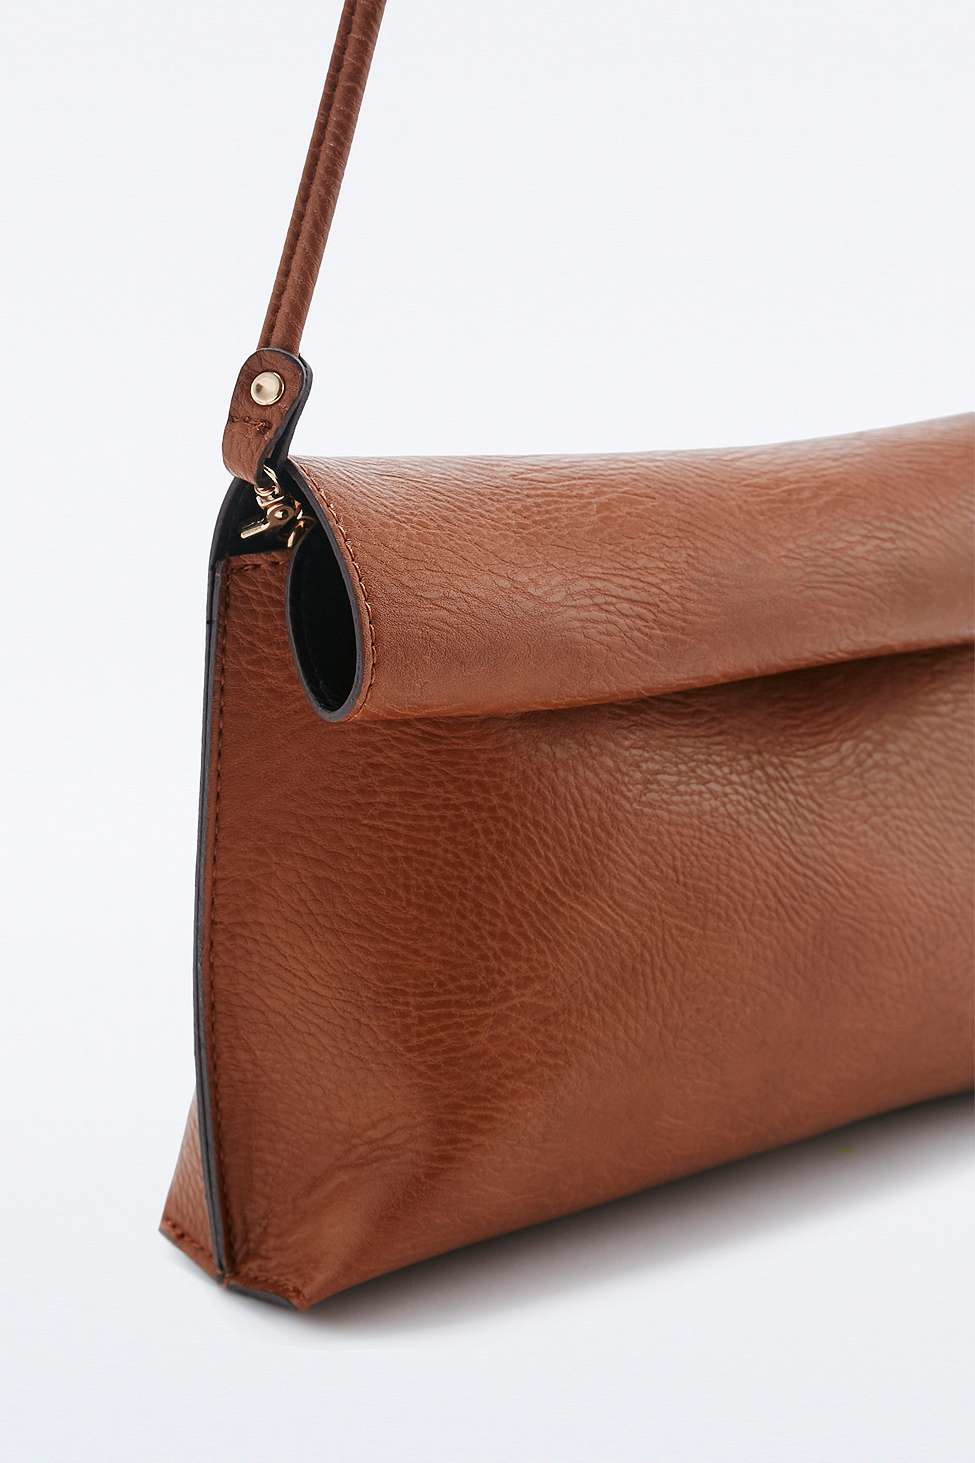 Purses Urban Outers Best Purse Image Ccdbb